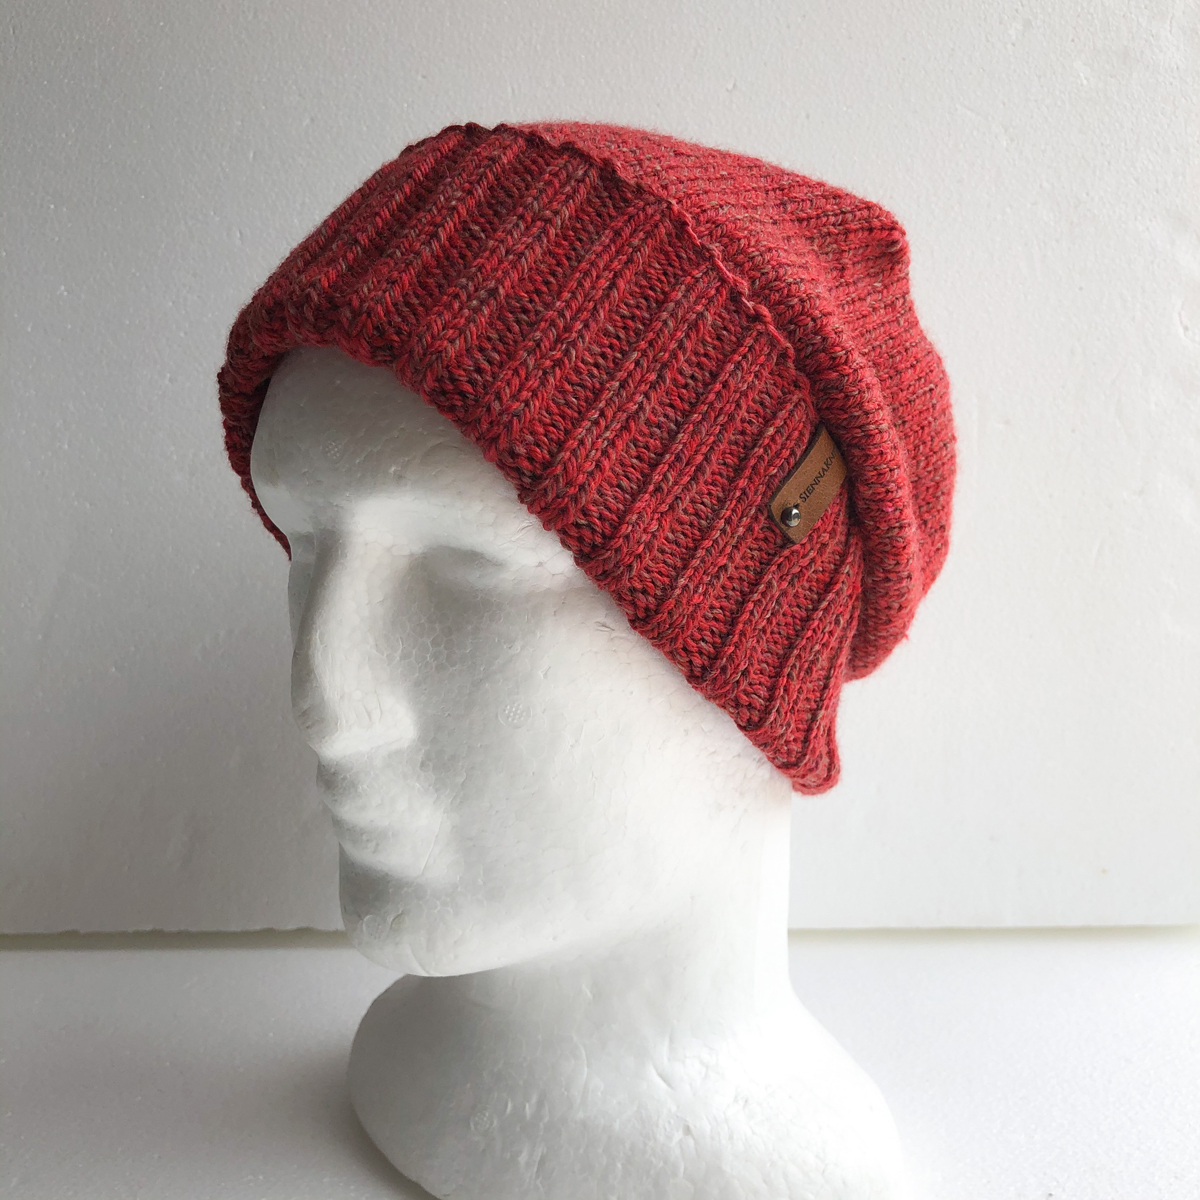 100% Wool Red Knit Women Beanie With Foldable Brim By SiennaKnits